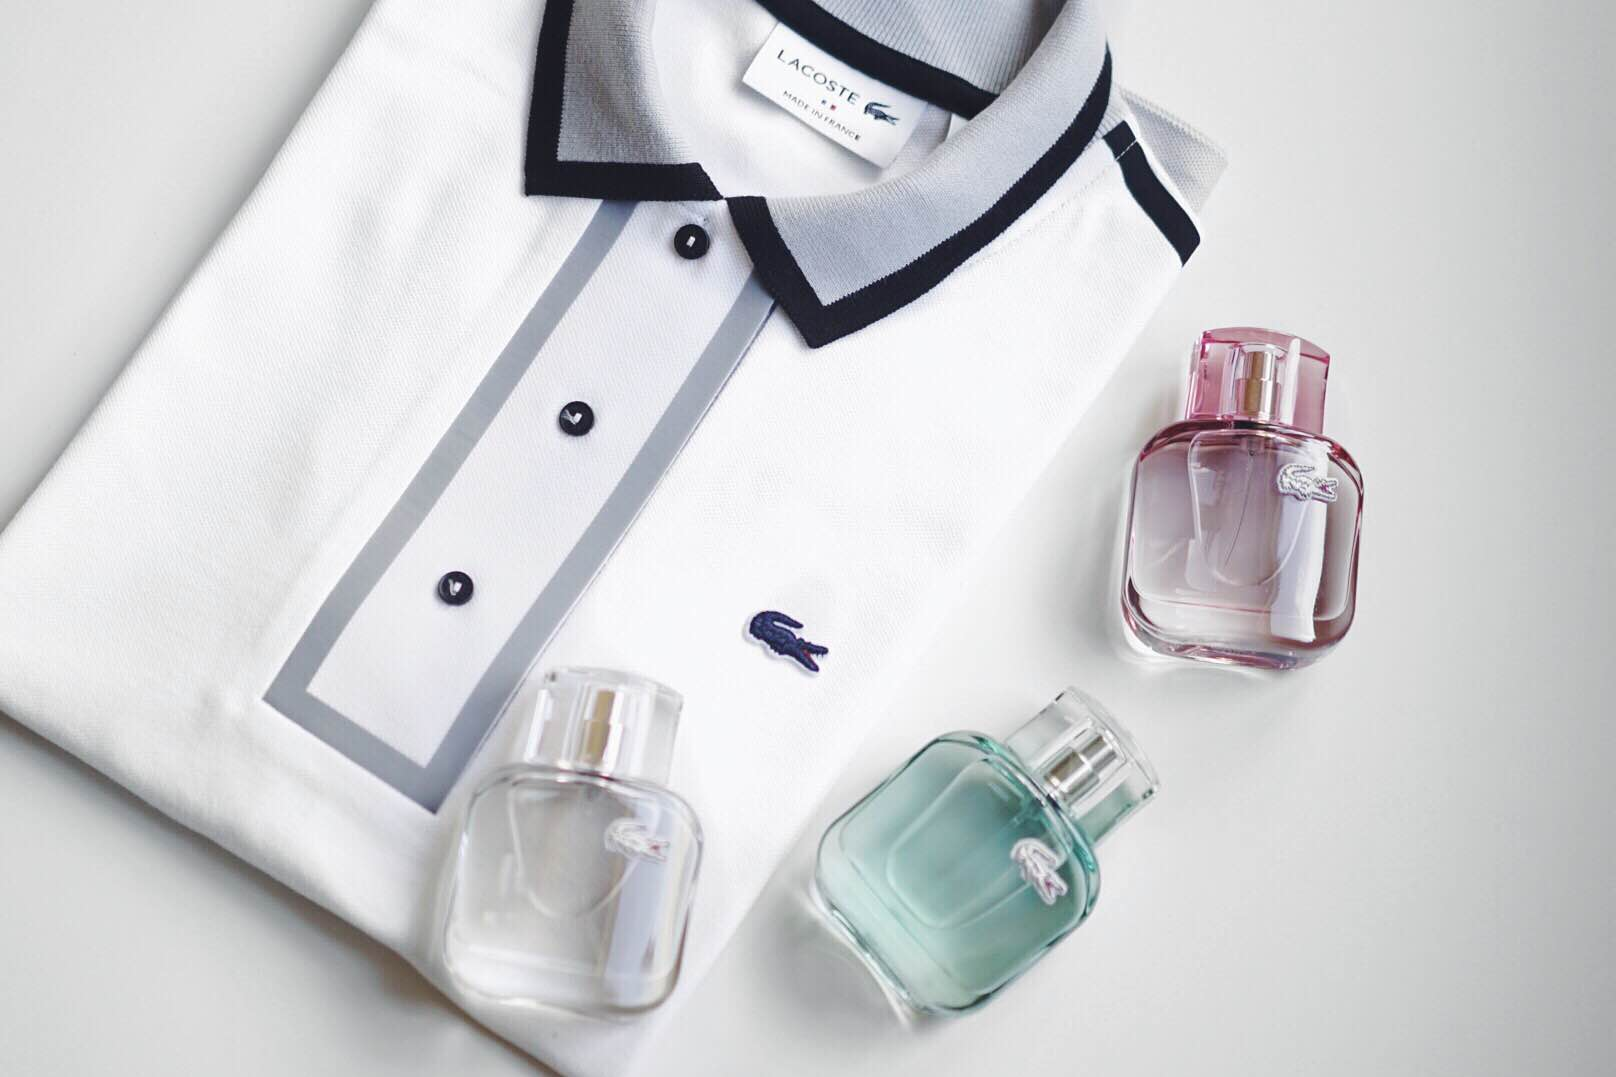 dc-event-travel-eau-de-lacoste-l-12-12-pour-elle-launch-07203439